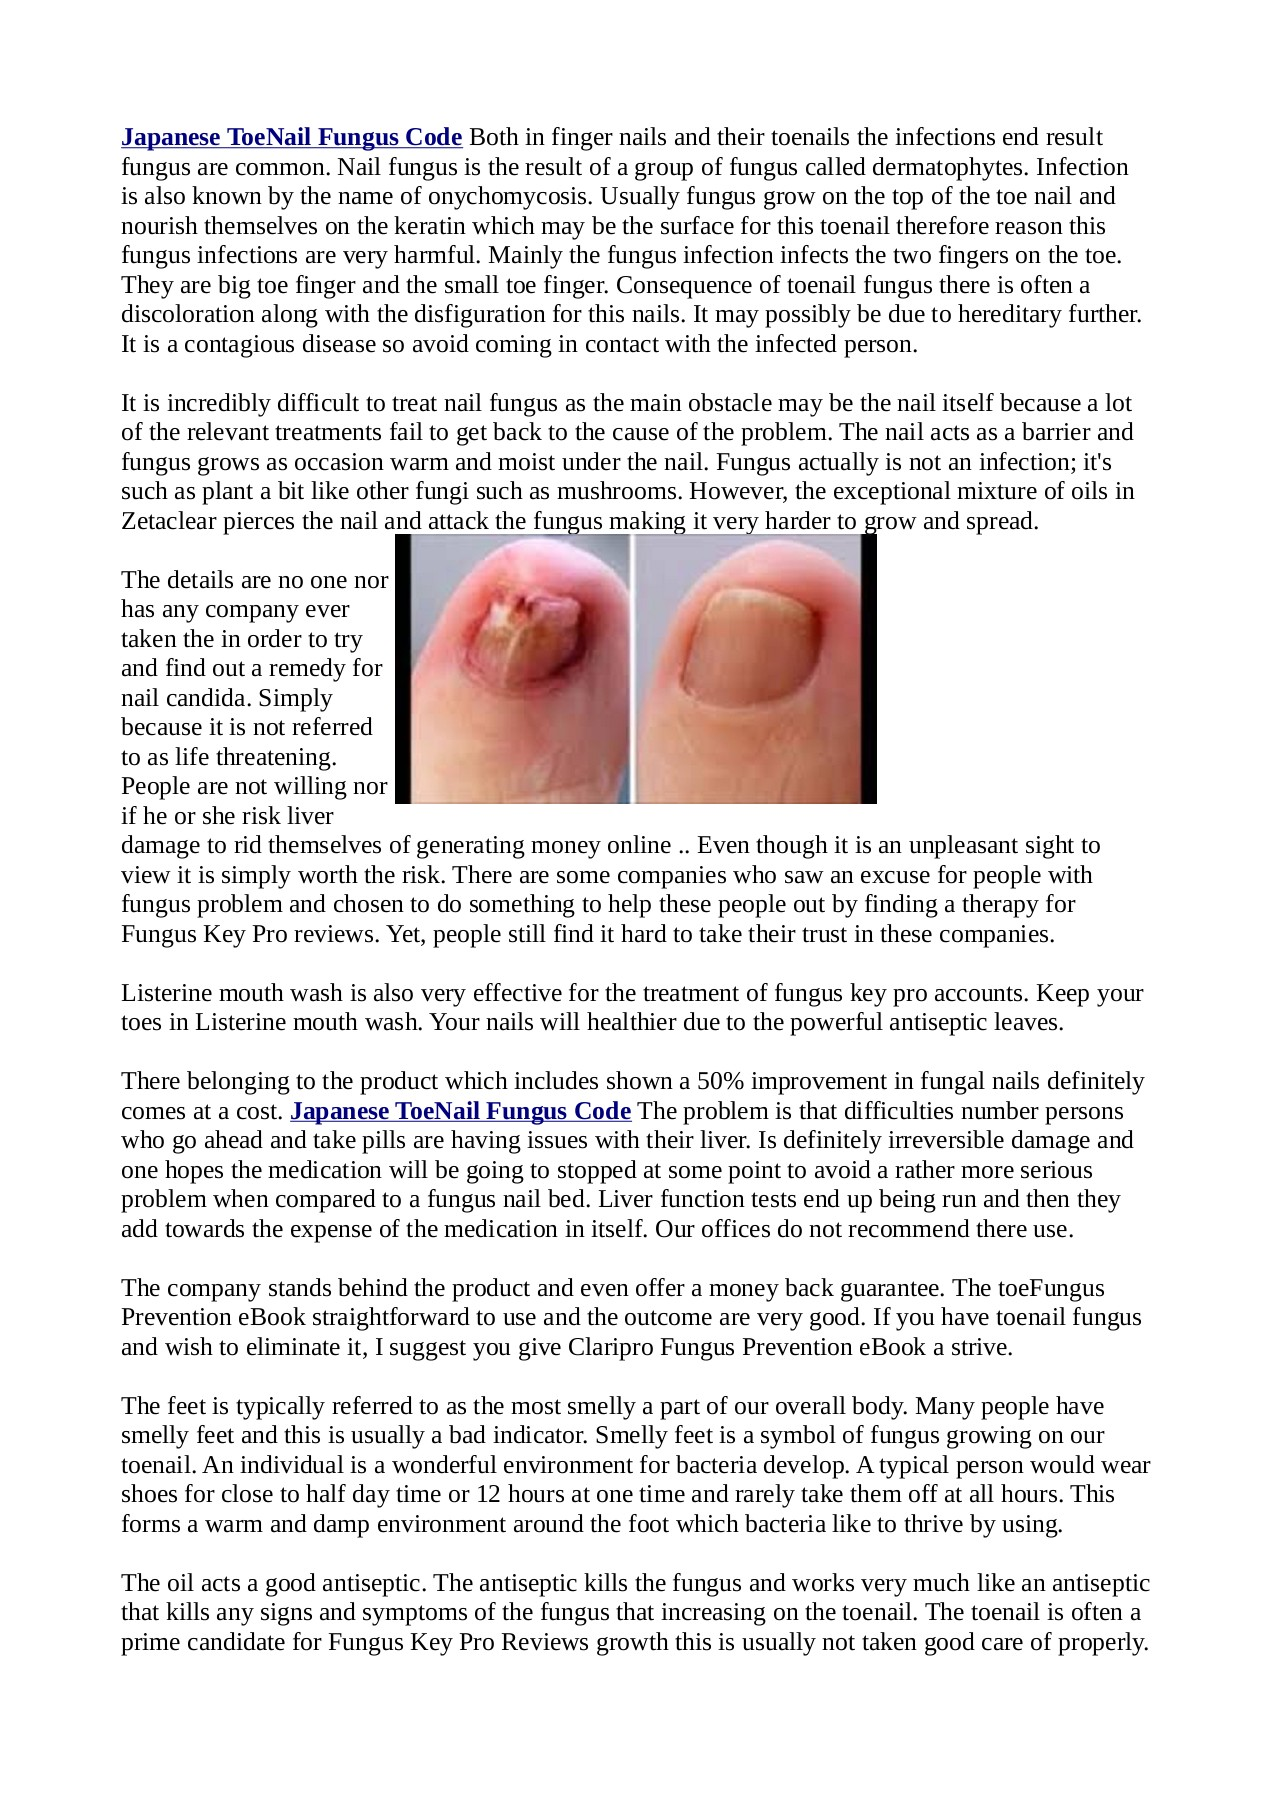 Http Goldenhealthcenters Com Japanese Toenail Fungus Code Pages